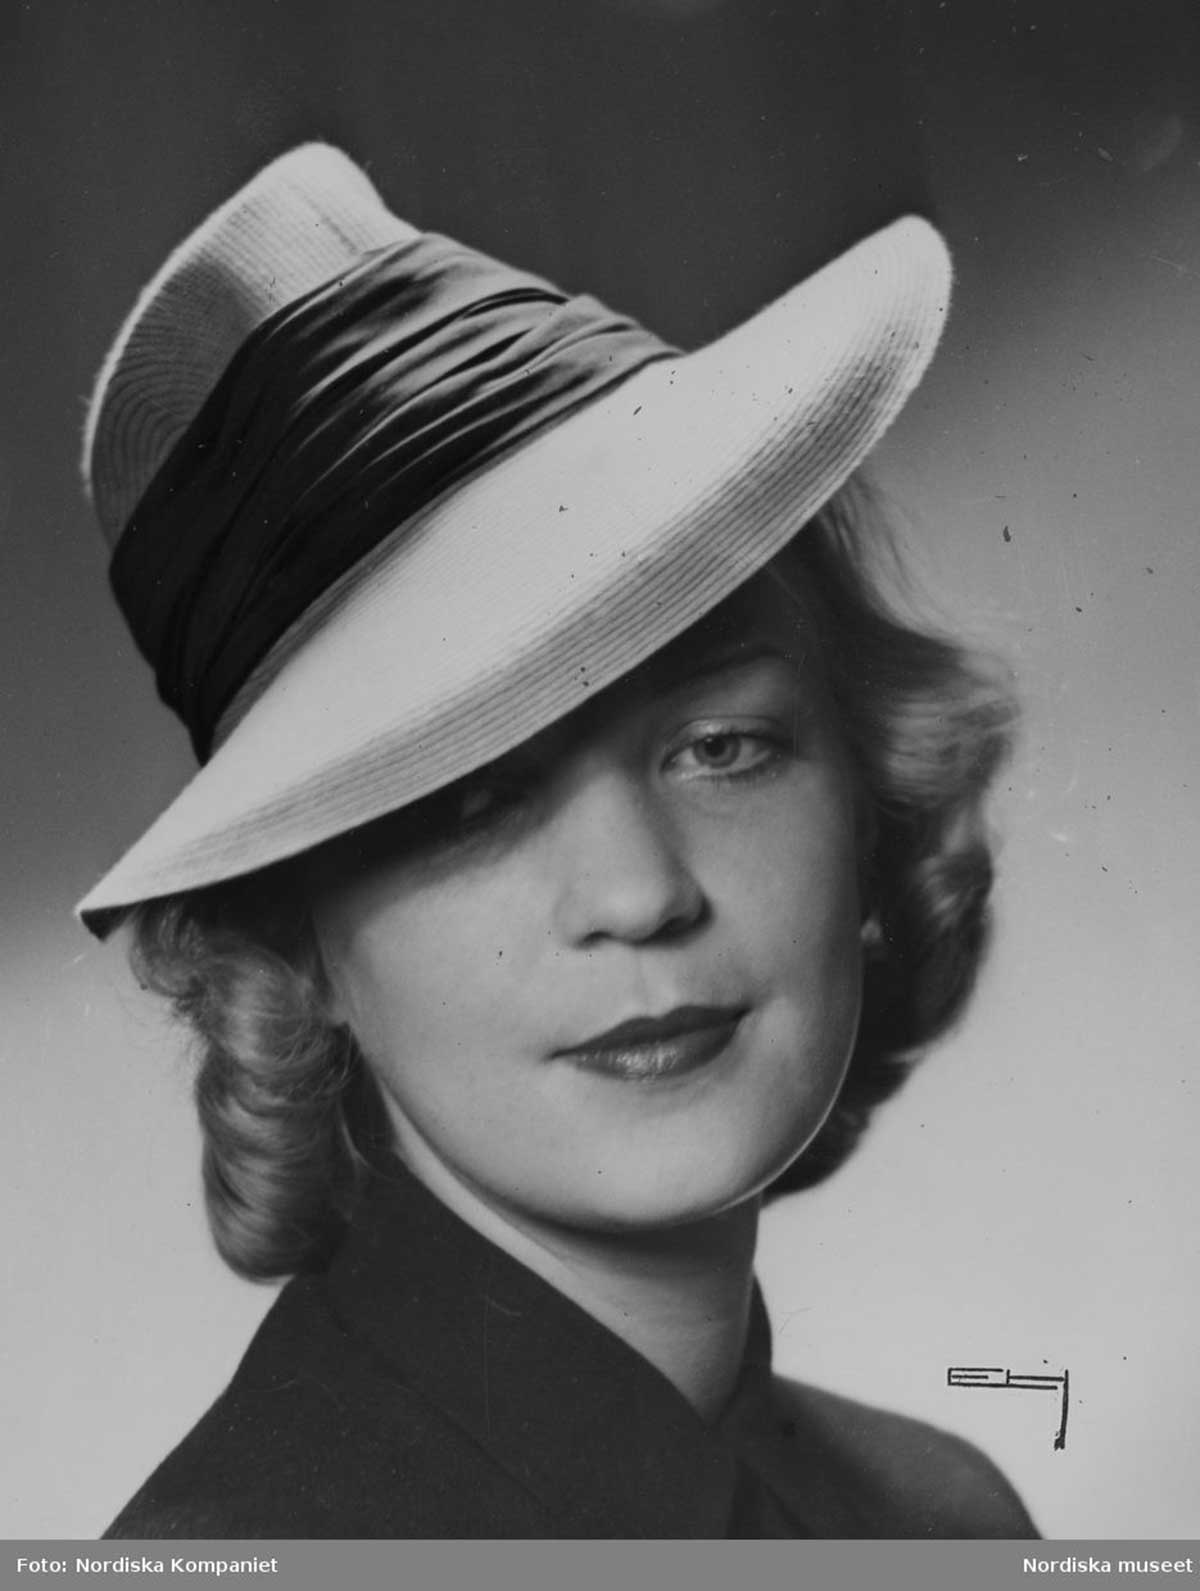 Model-in-hat-with-hill-and-flat,-wide-hat-1940